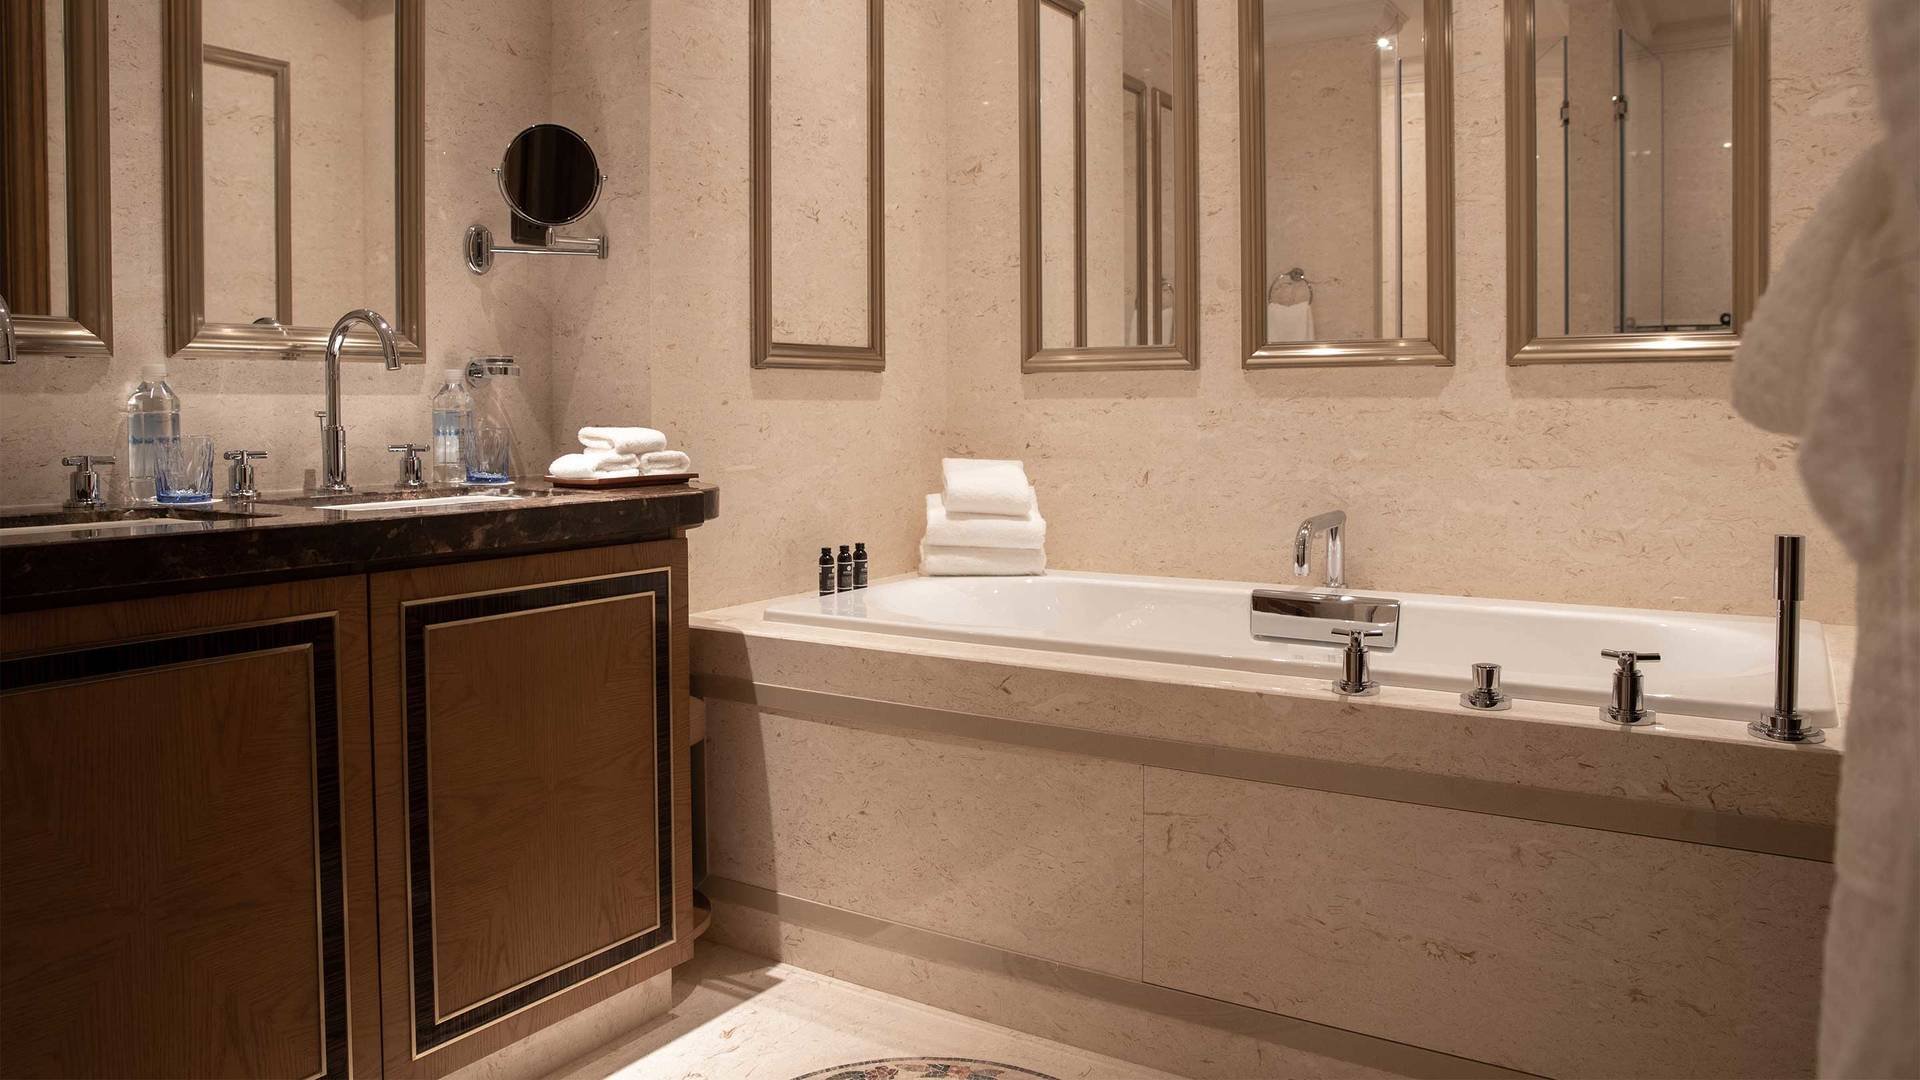 16-9 JUMEIRAH LIVING GUANGZHOU Class 2 bed room suite bath room